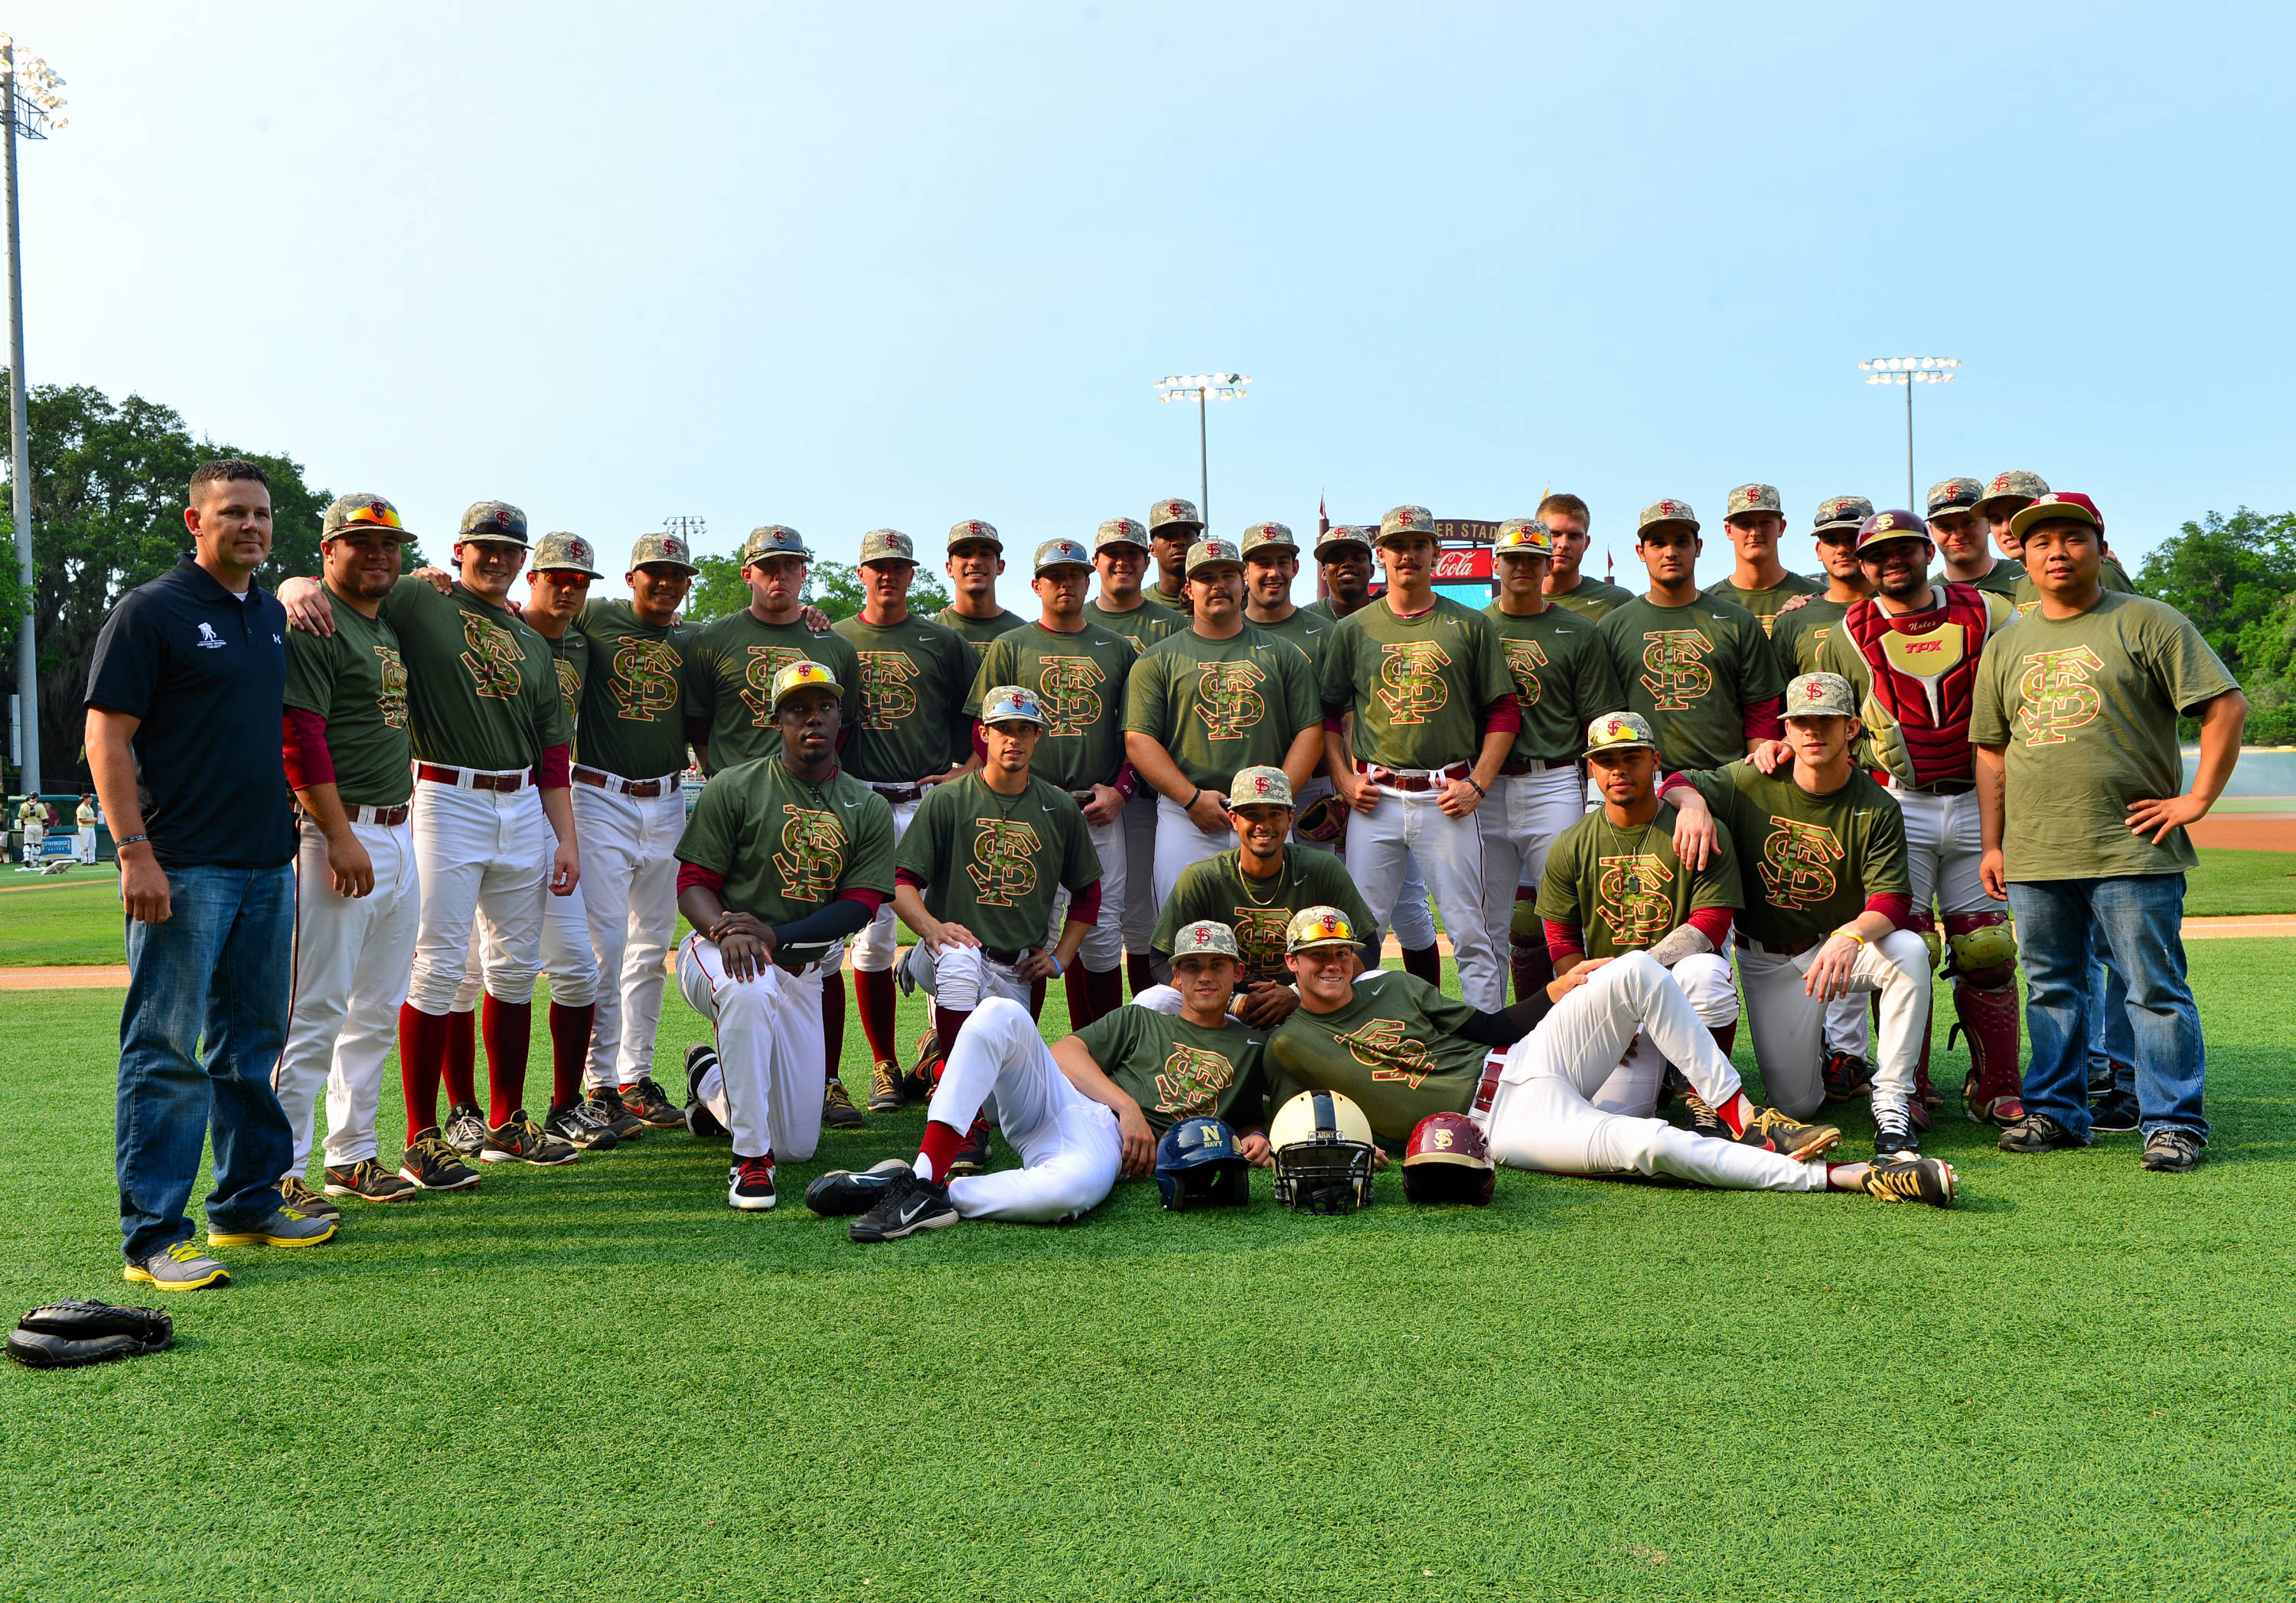 The Seminoles honor our nation's service men and women Saturday night with Military Appreciation Night at the ballpark.